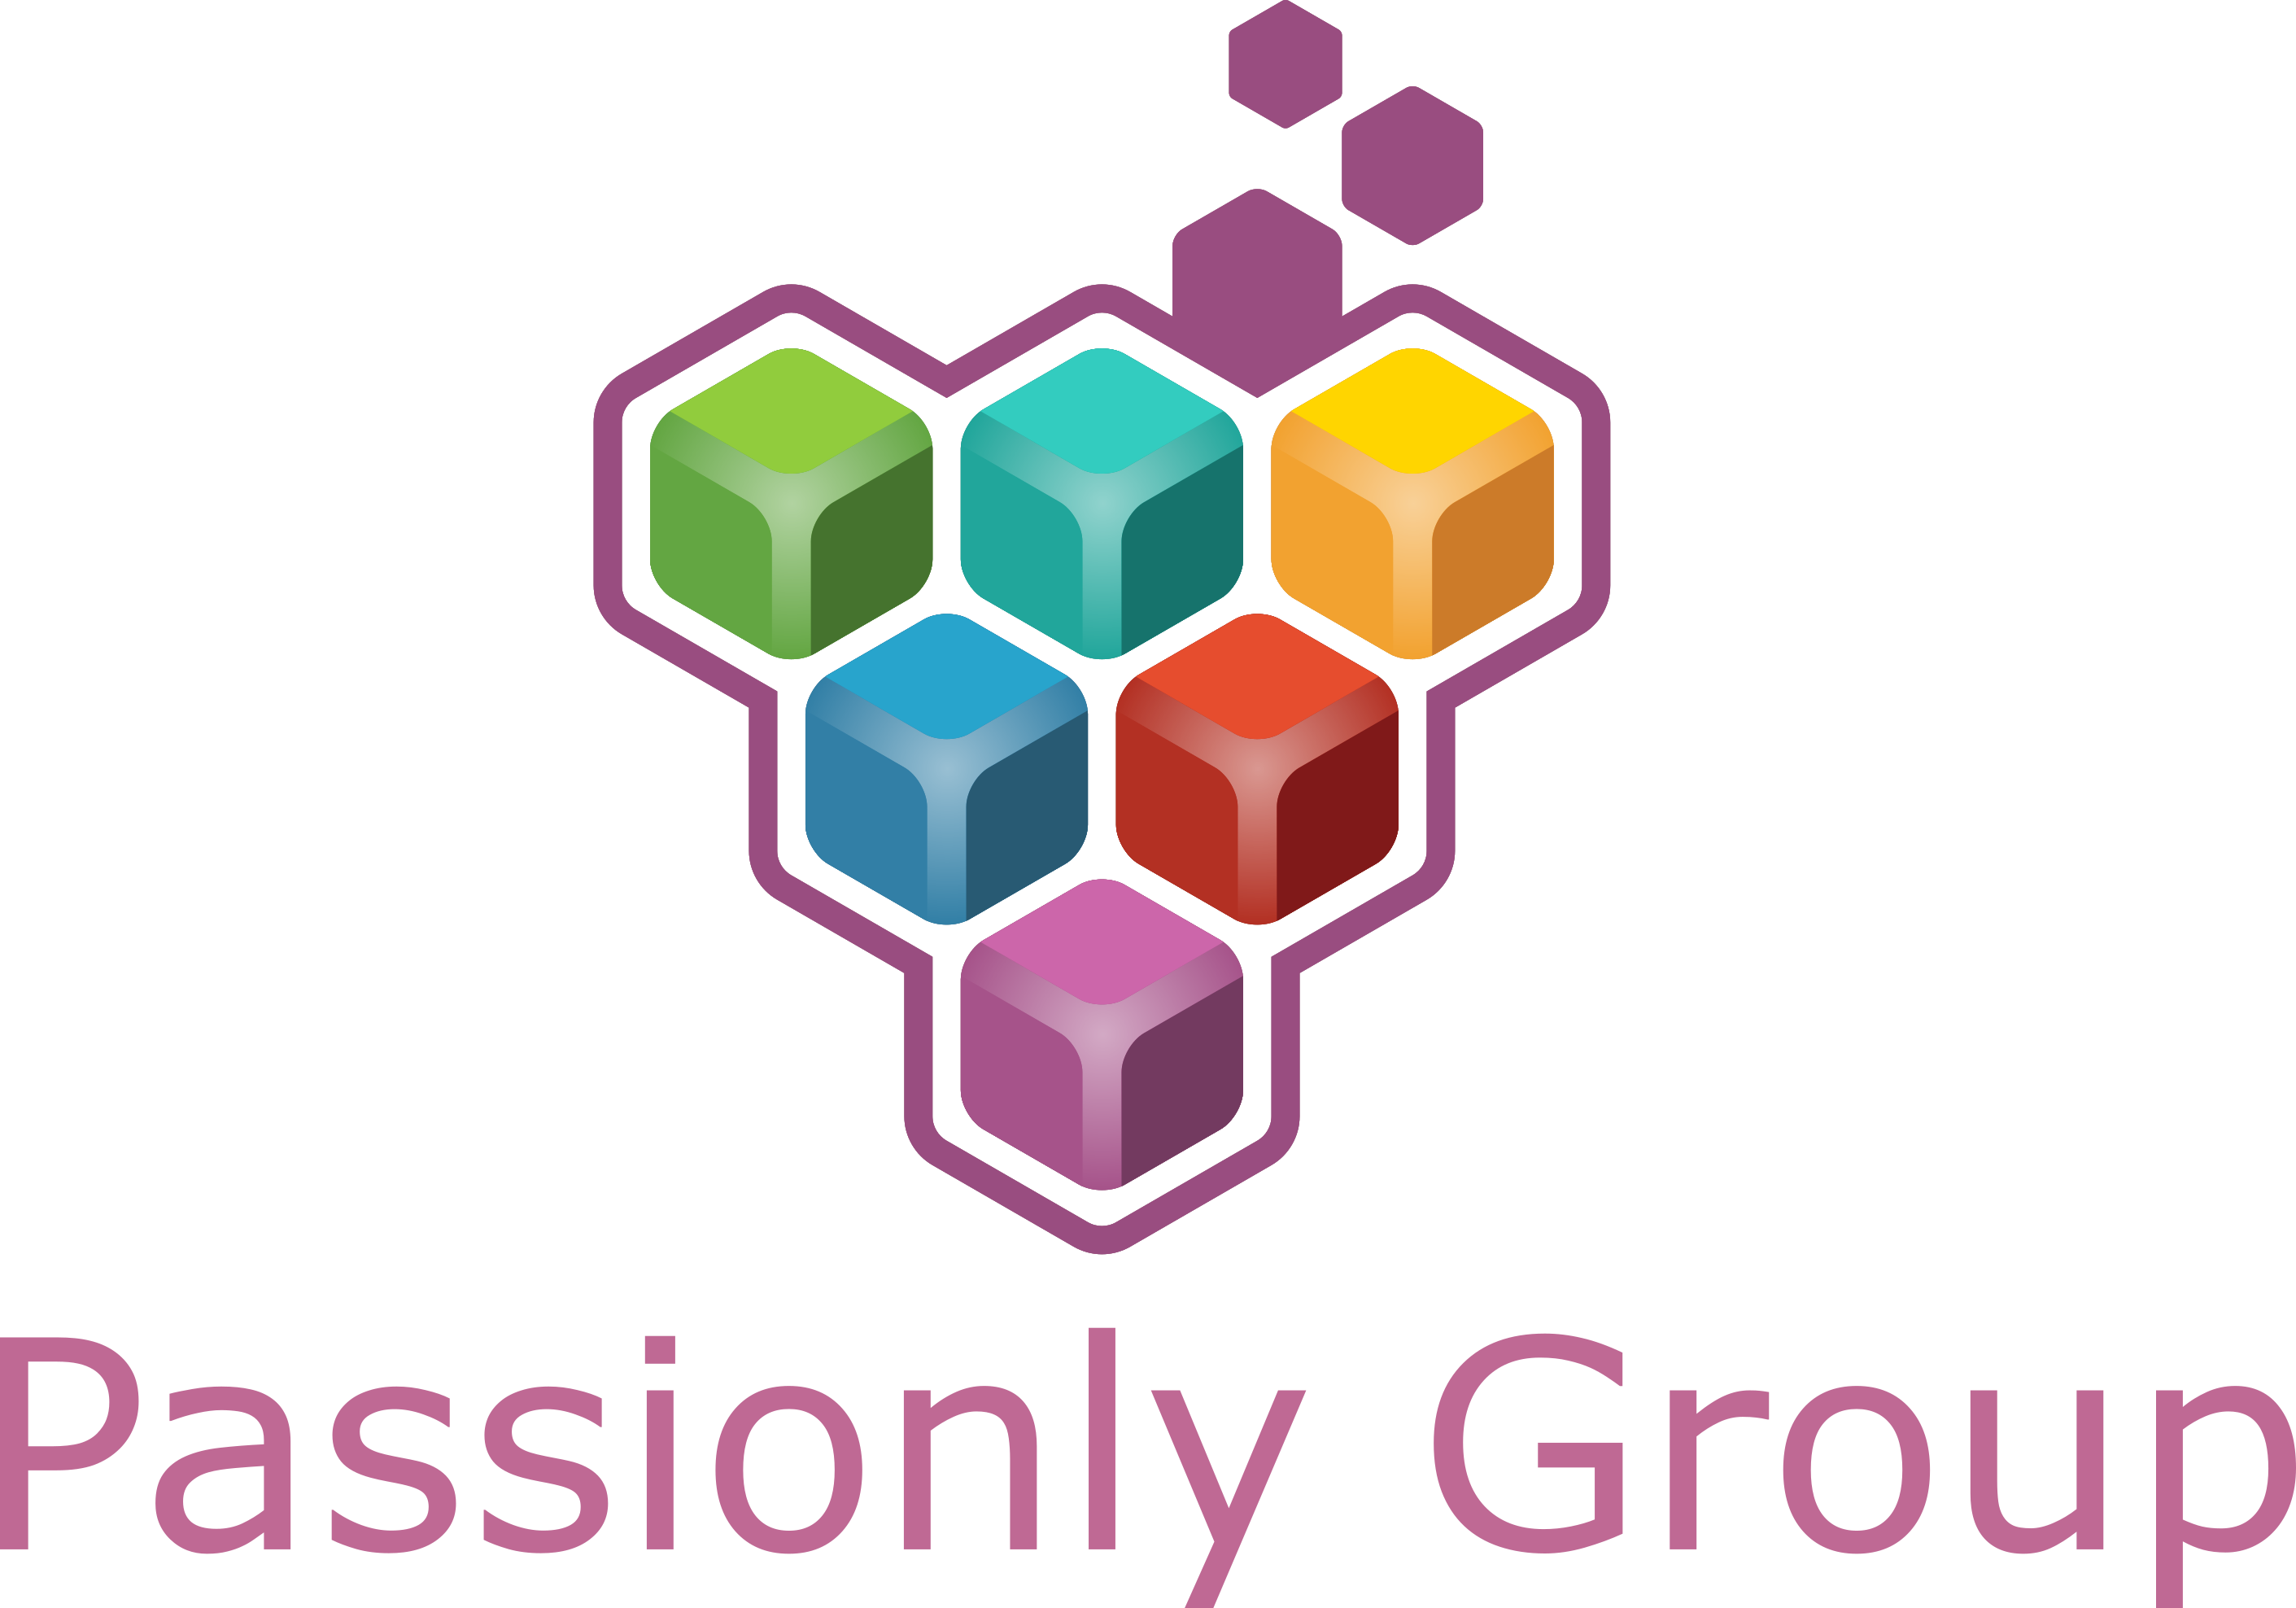 Passionly GmbH